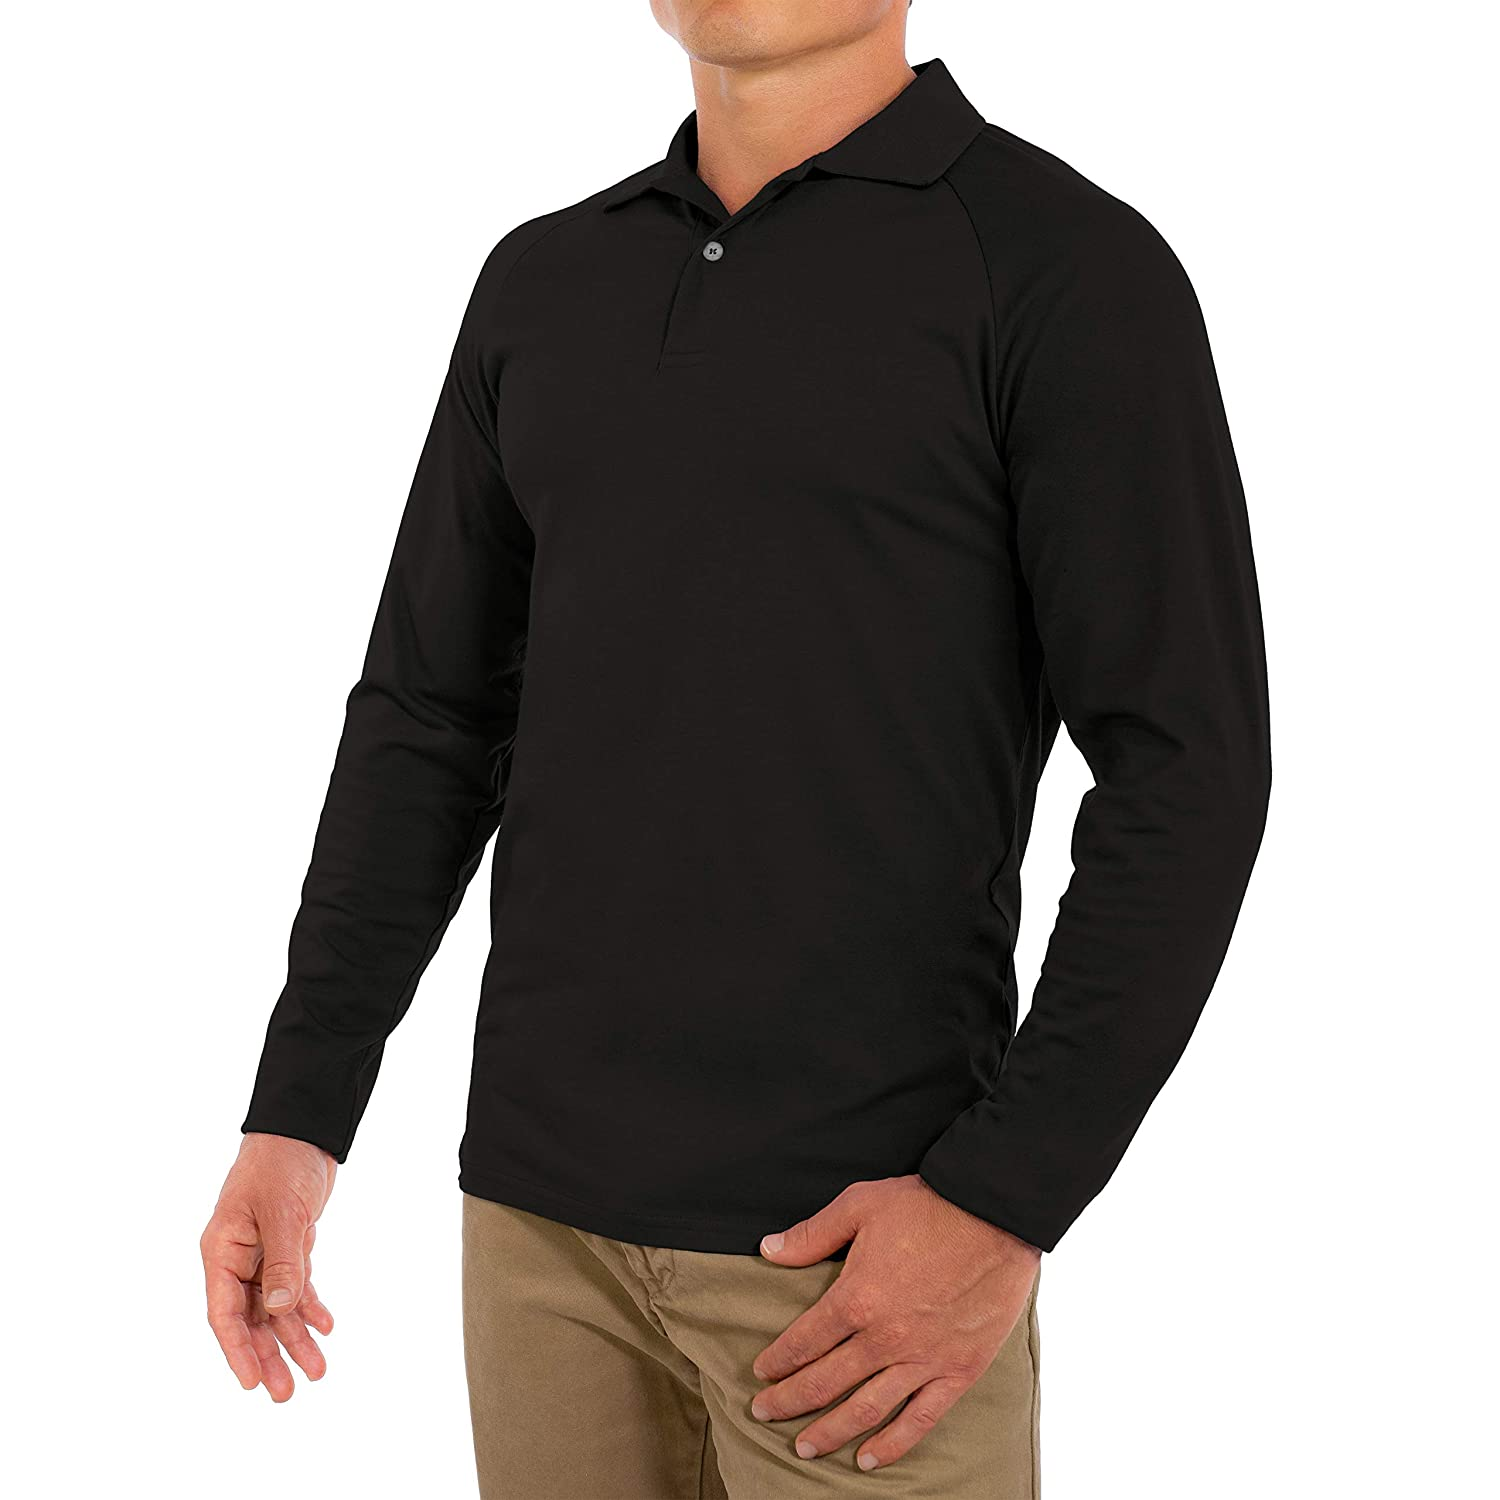 5c3695257846c8 CC Perfect Slim Fit Long Sleeve Polo Shirts for Men | Soft Fitted  Breathable Mens Long Sleeve Polo Shirts at Amazon Men's Clothing store: